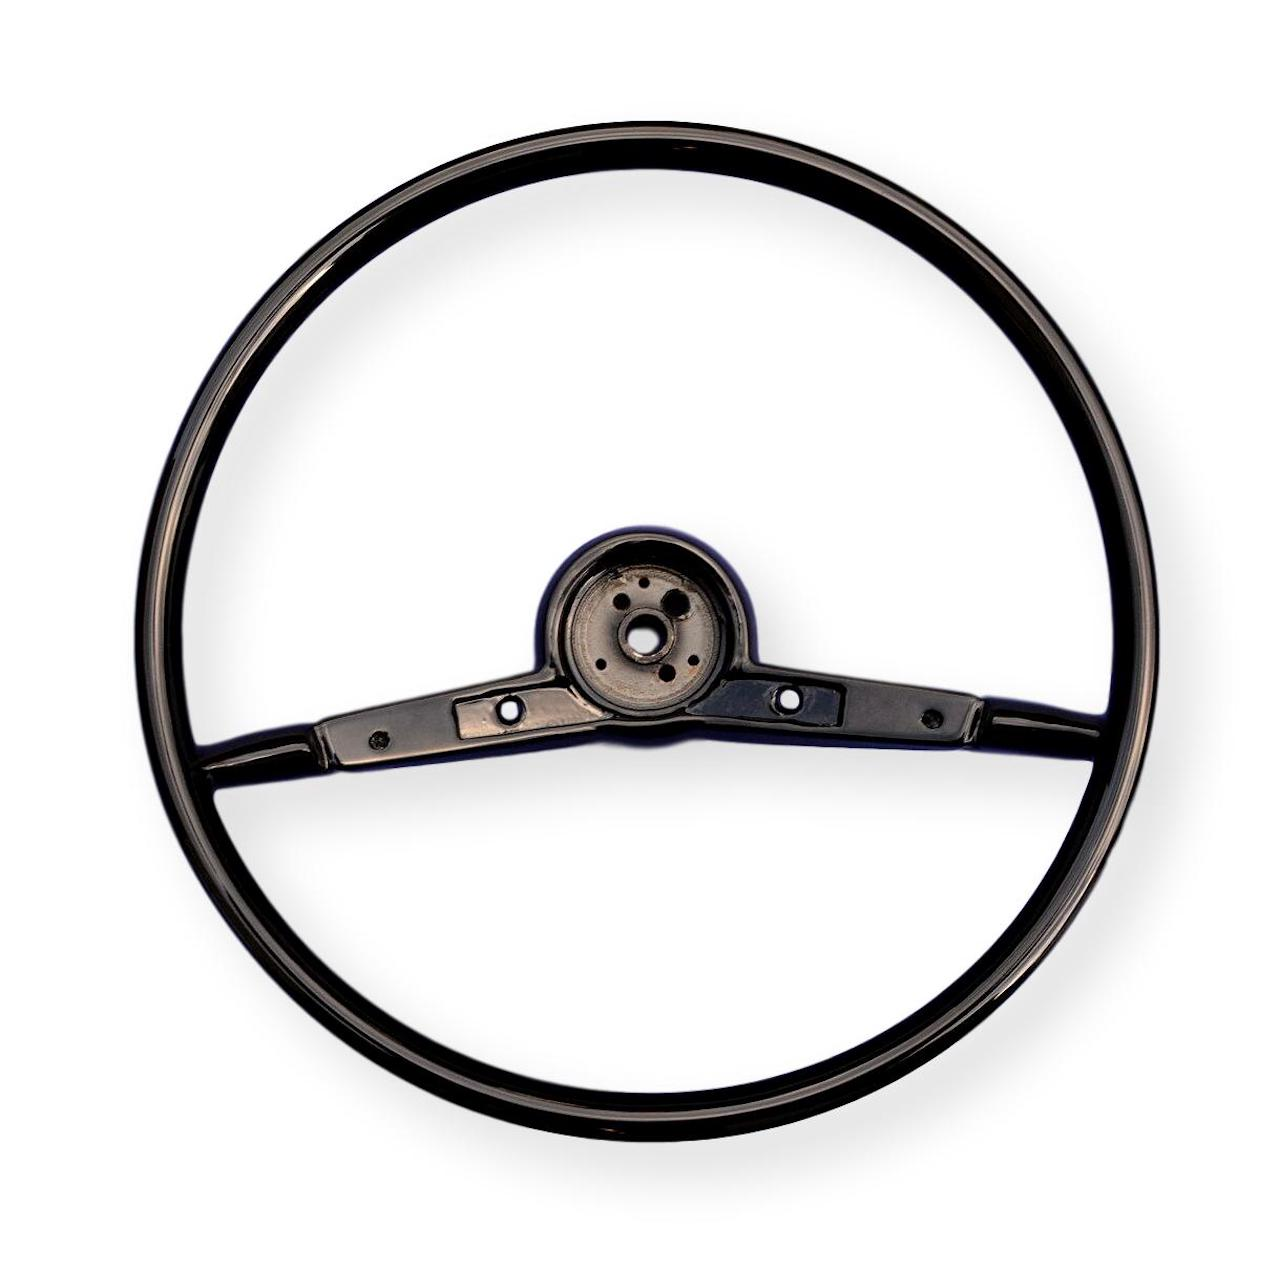 1957 Chevy Original Style Steering Wheel 16